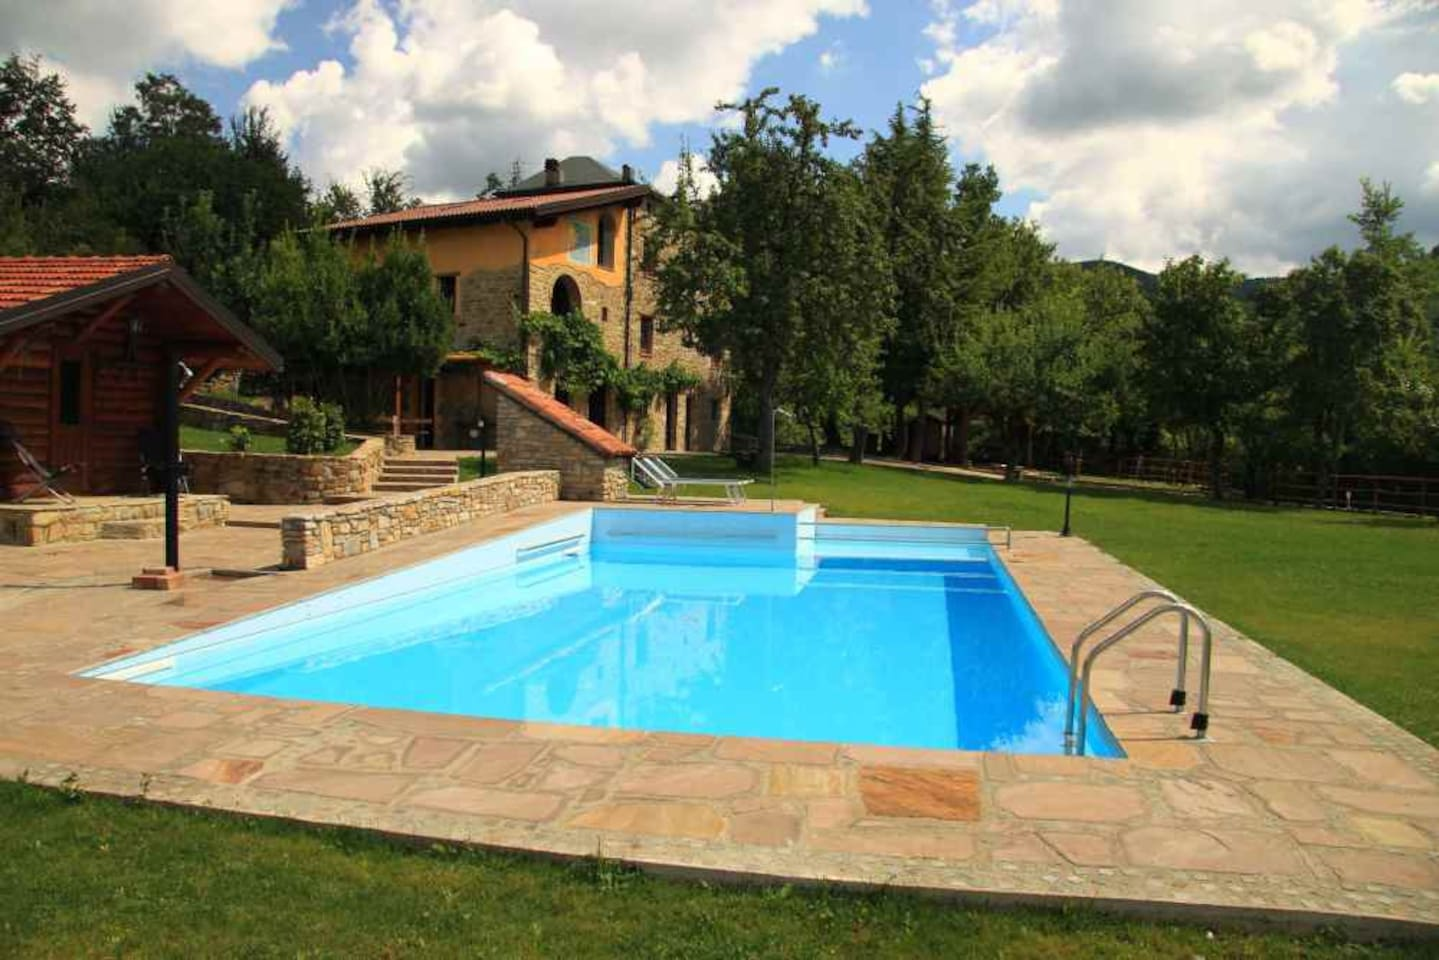 the pool and the stone house